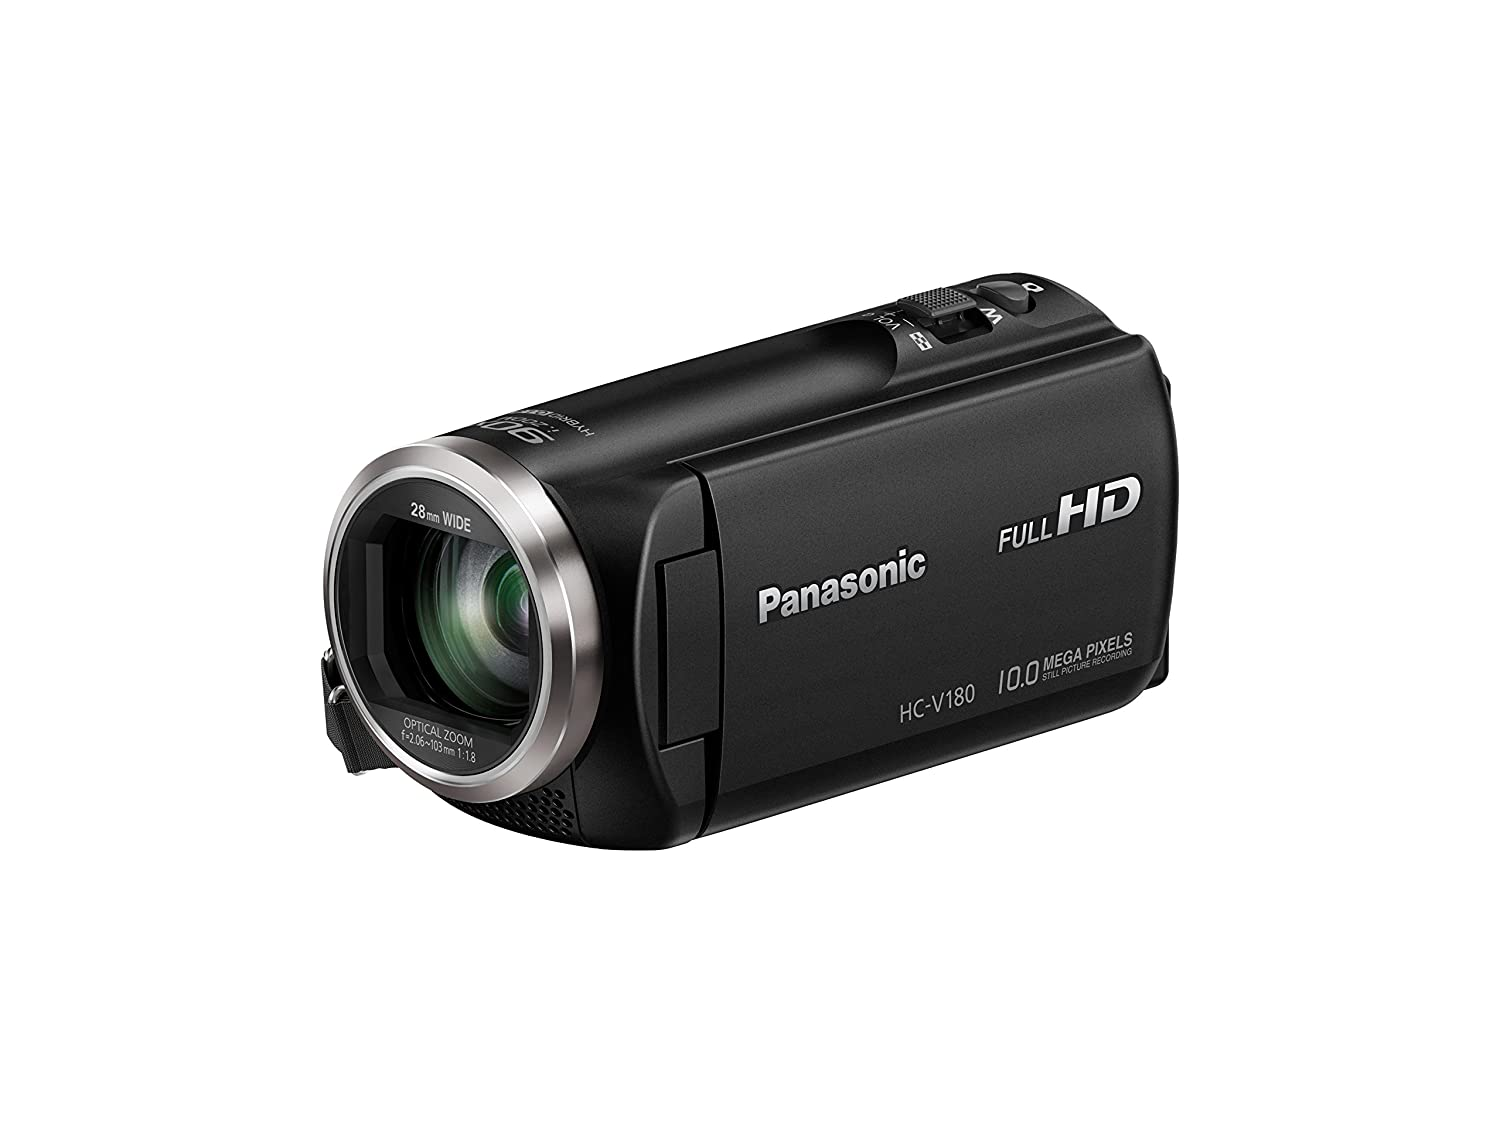 Amazon.com : Panasonic HC-V180K Full HD Camcorder with 50x Stabilized Optical Zoom with AmazonBasics 60-Inch Lightweight Tripod : Camera & Photo